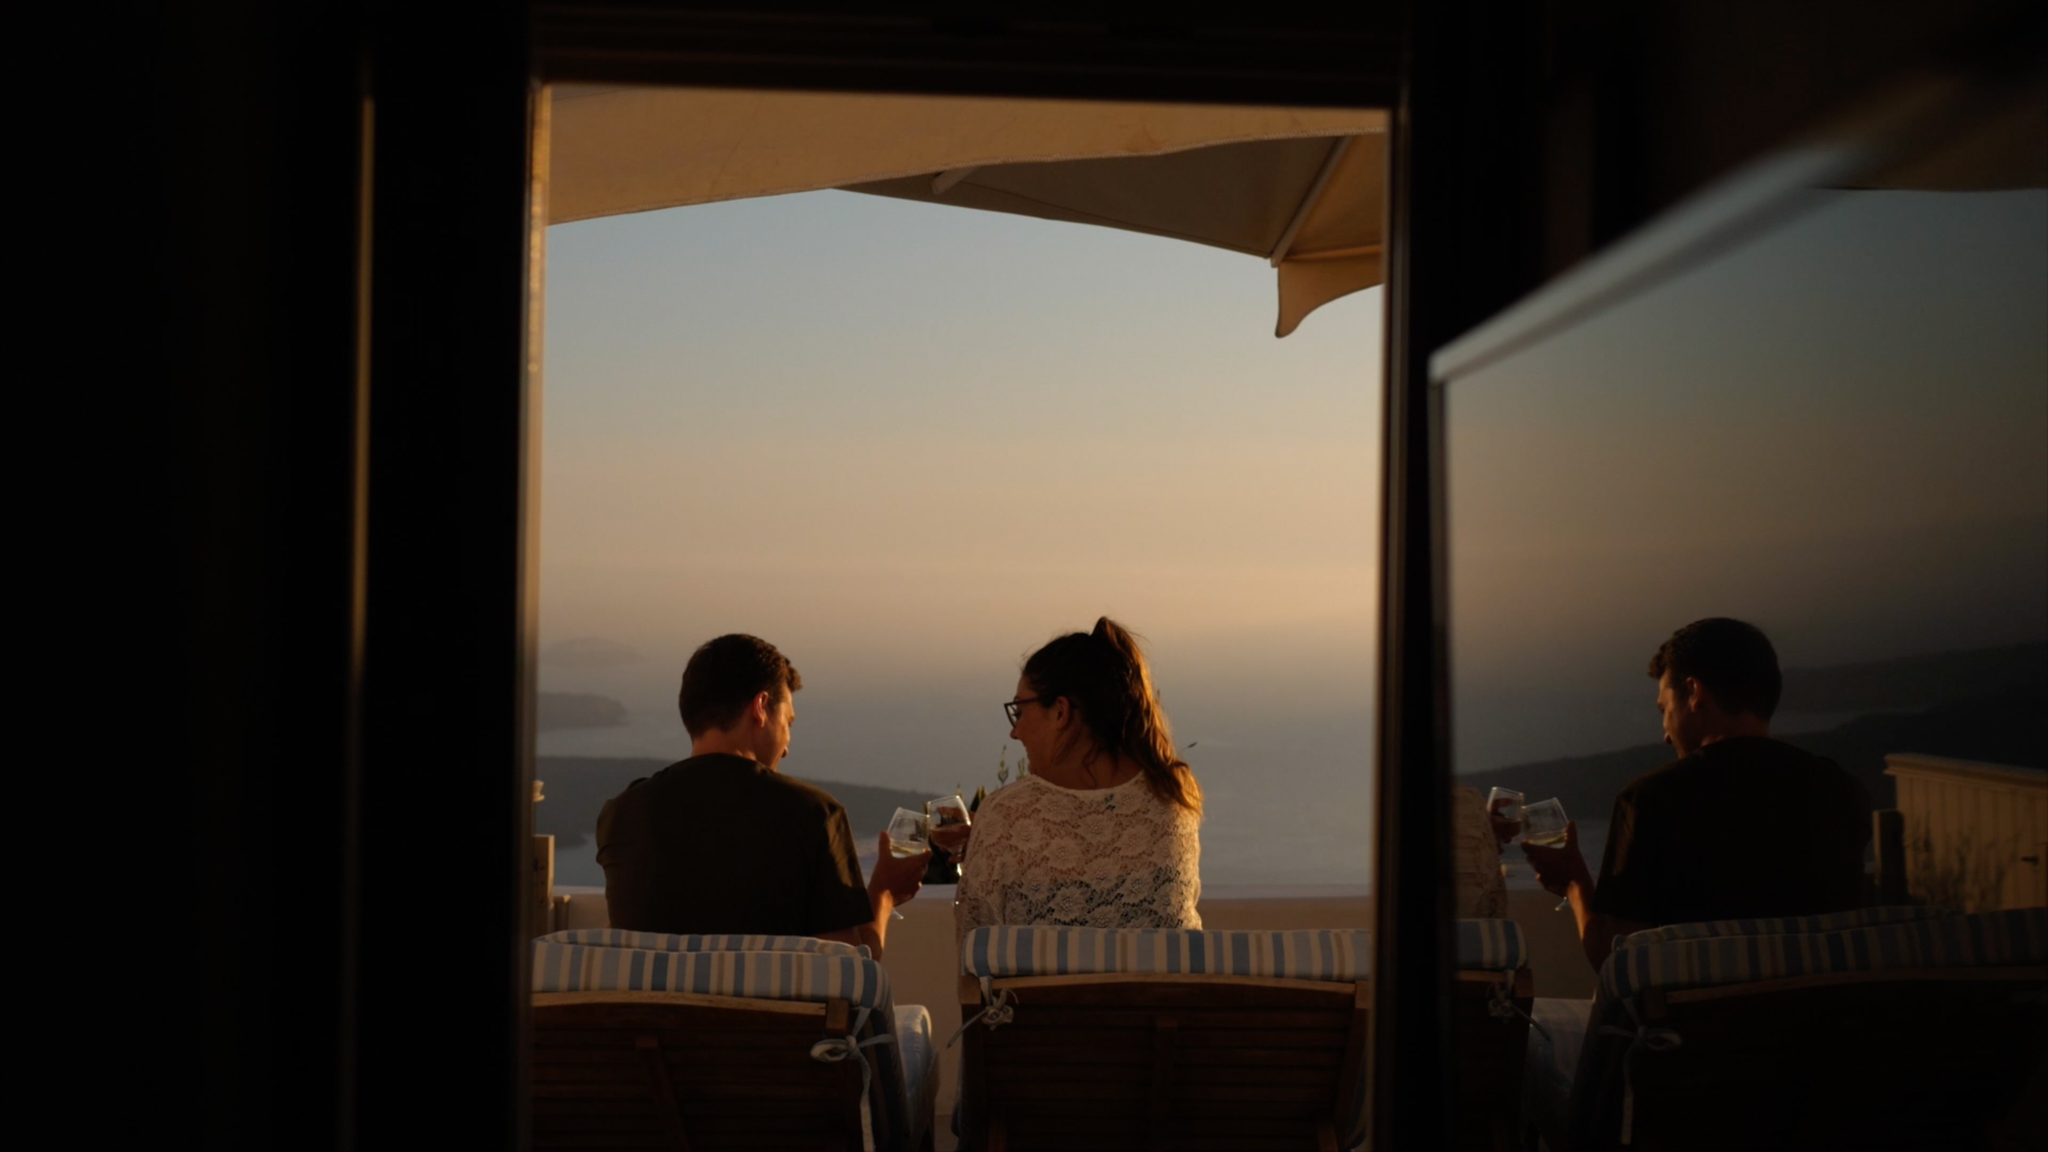 Sara and Gareth say cheers to one another, whilst overlooking the beautiful sunset of Santorini's Caldera.